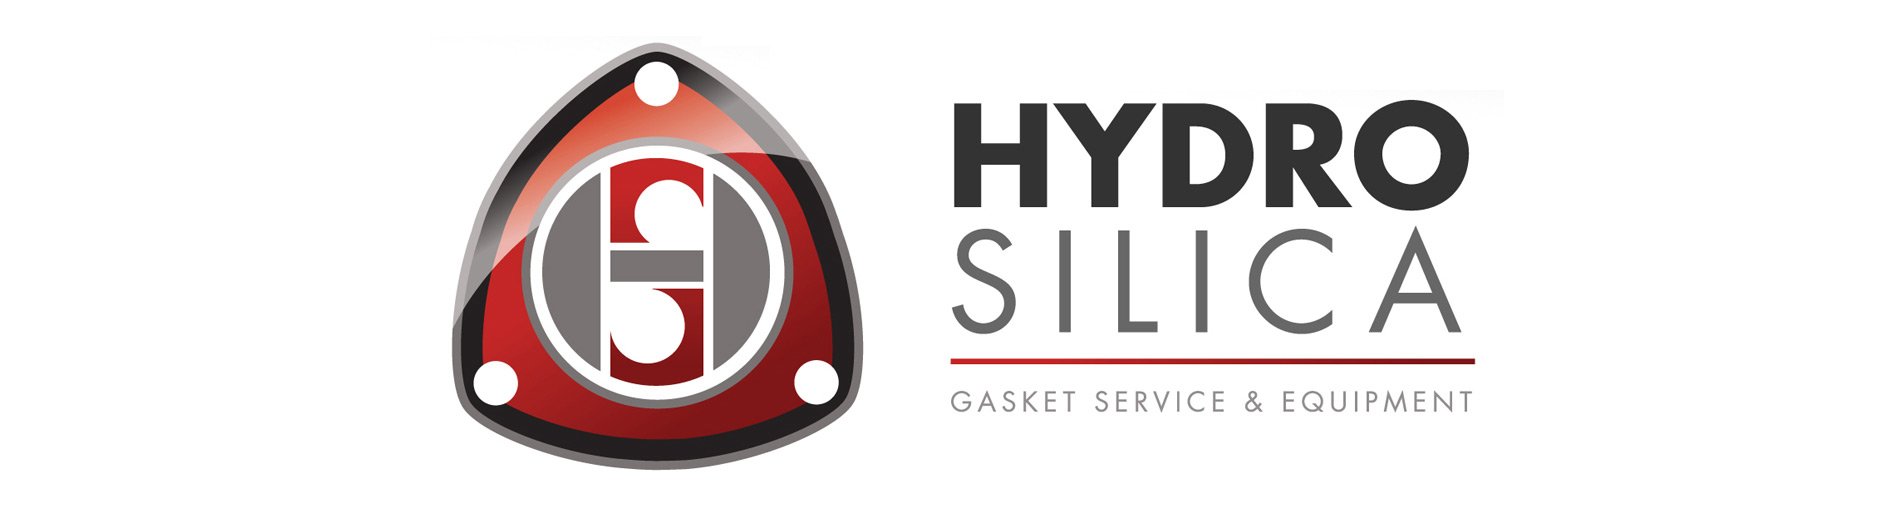 Gaskets manufacturer and distributor